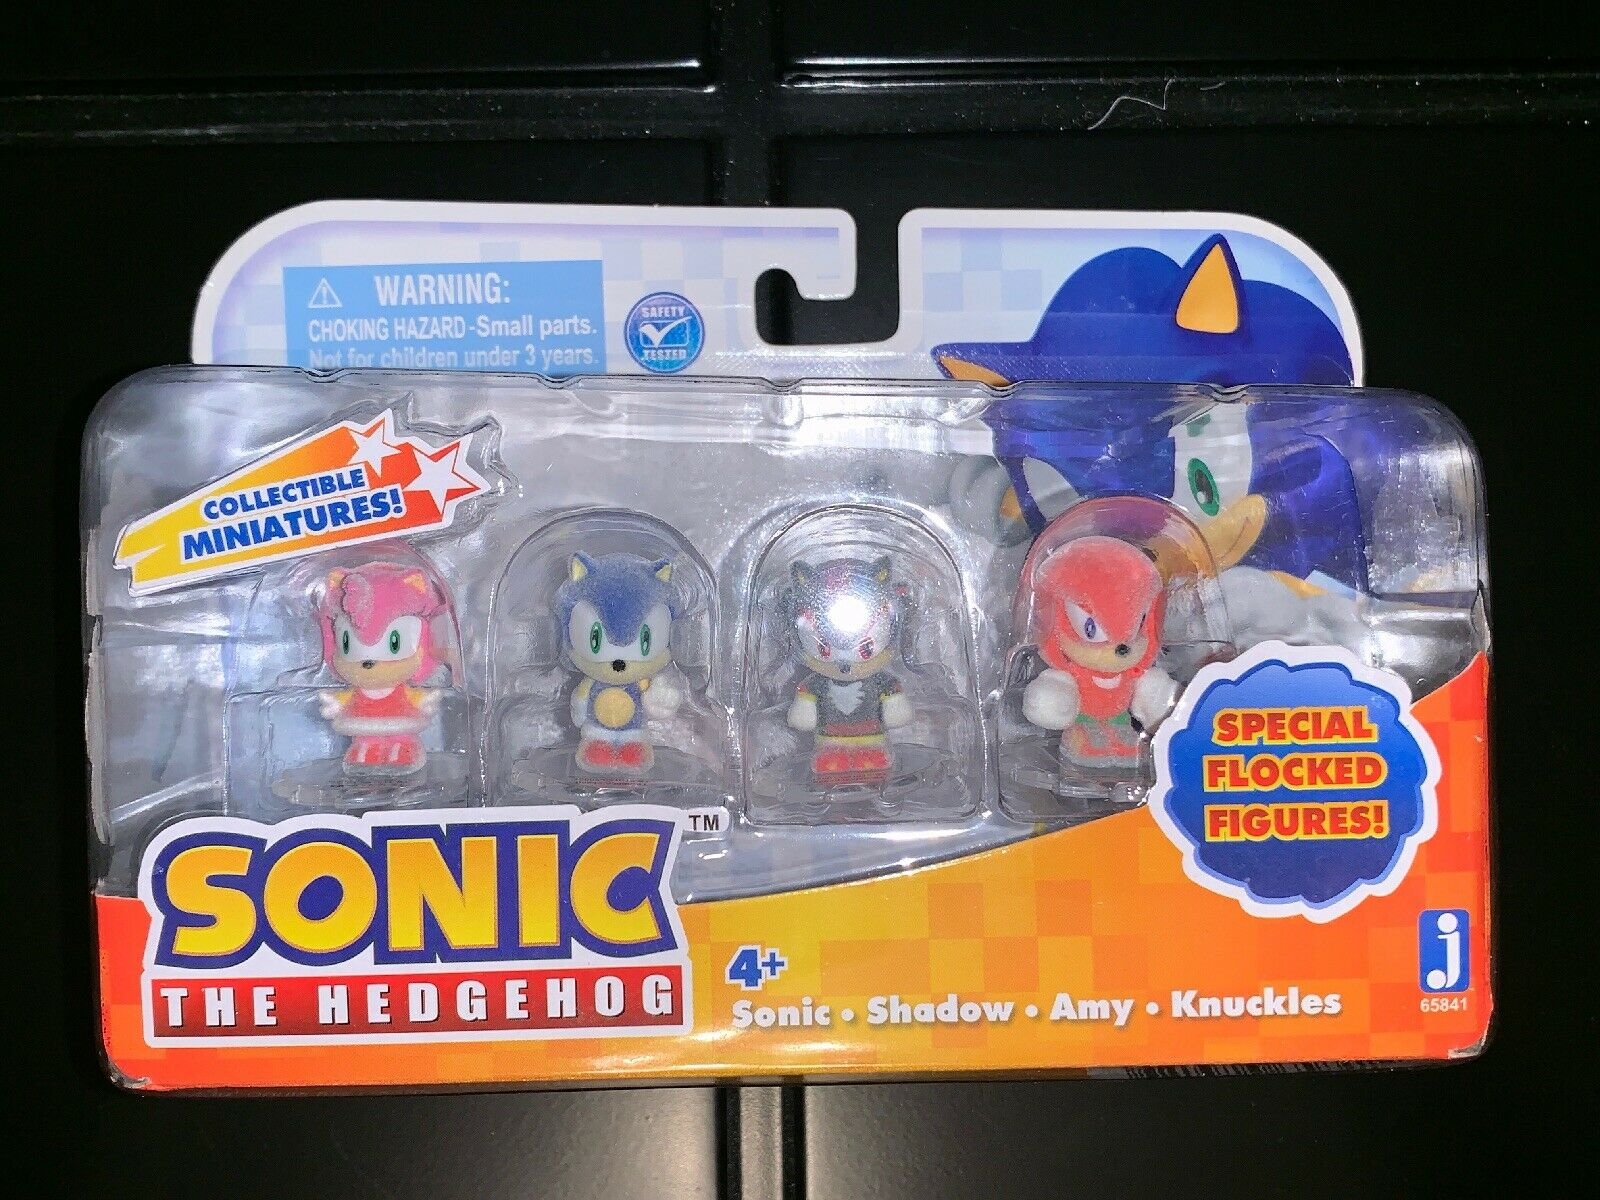 Sonic the Hedgehog specialee Sonic, Shadow, Amy, Knuckles Flocked 1 Mini Fig